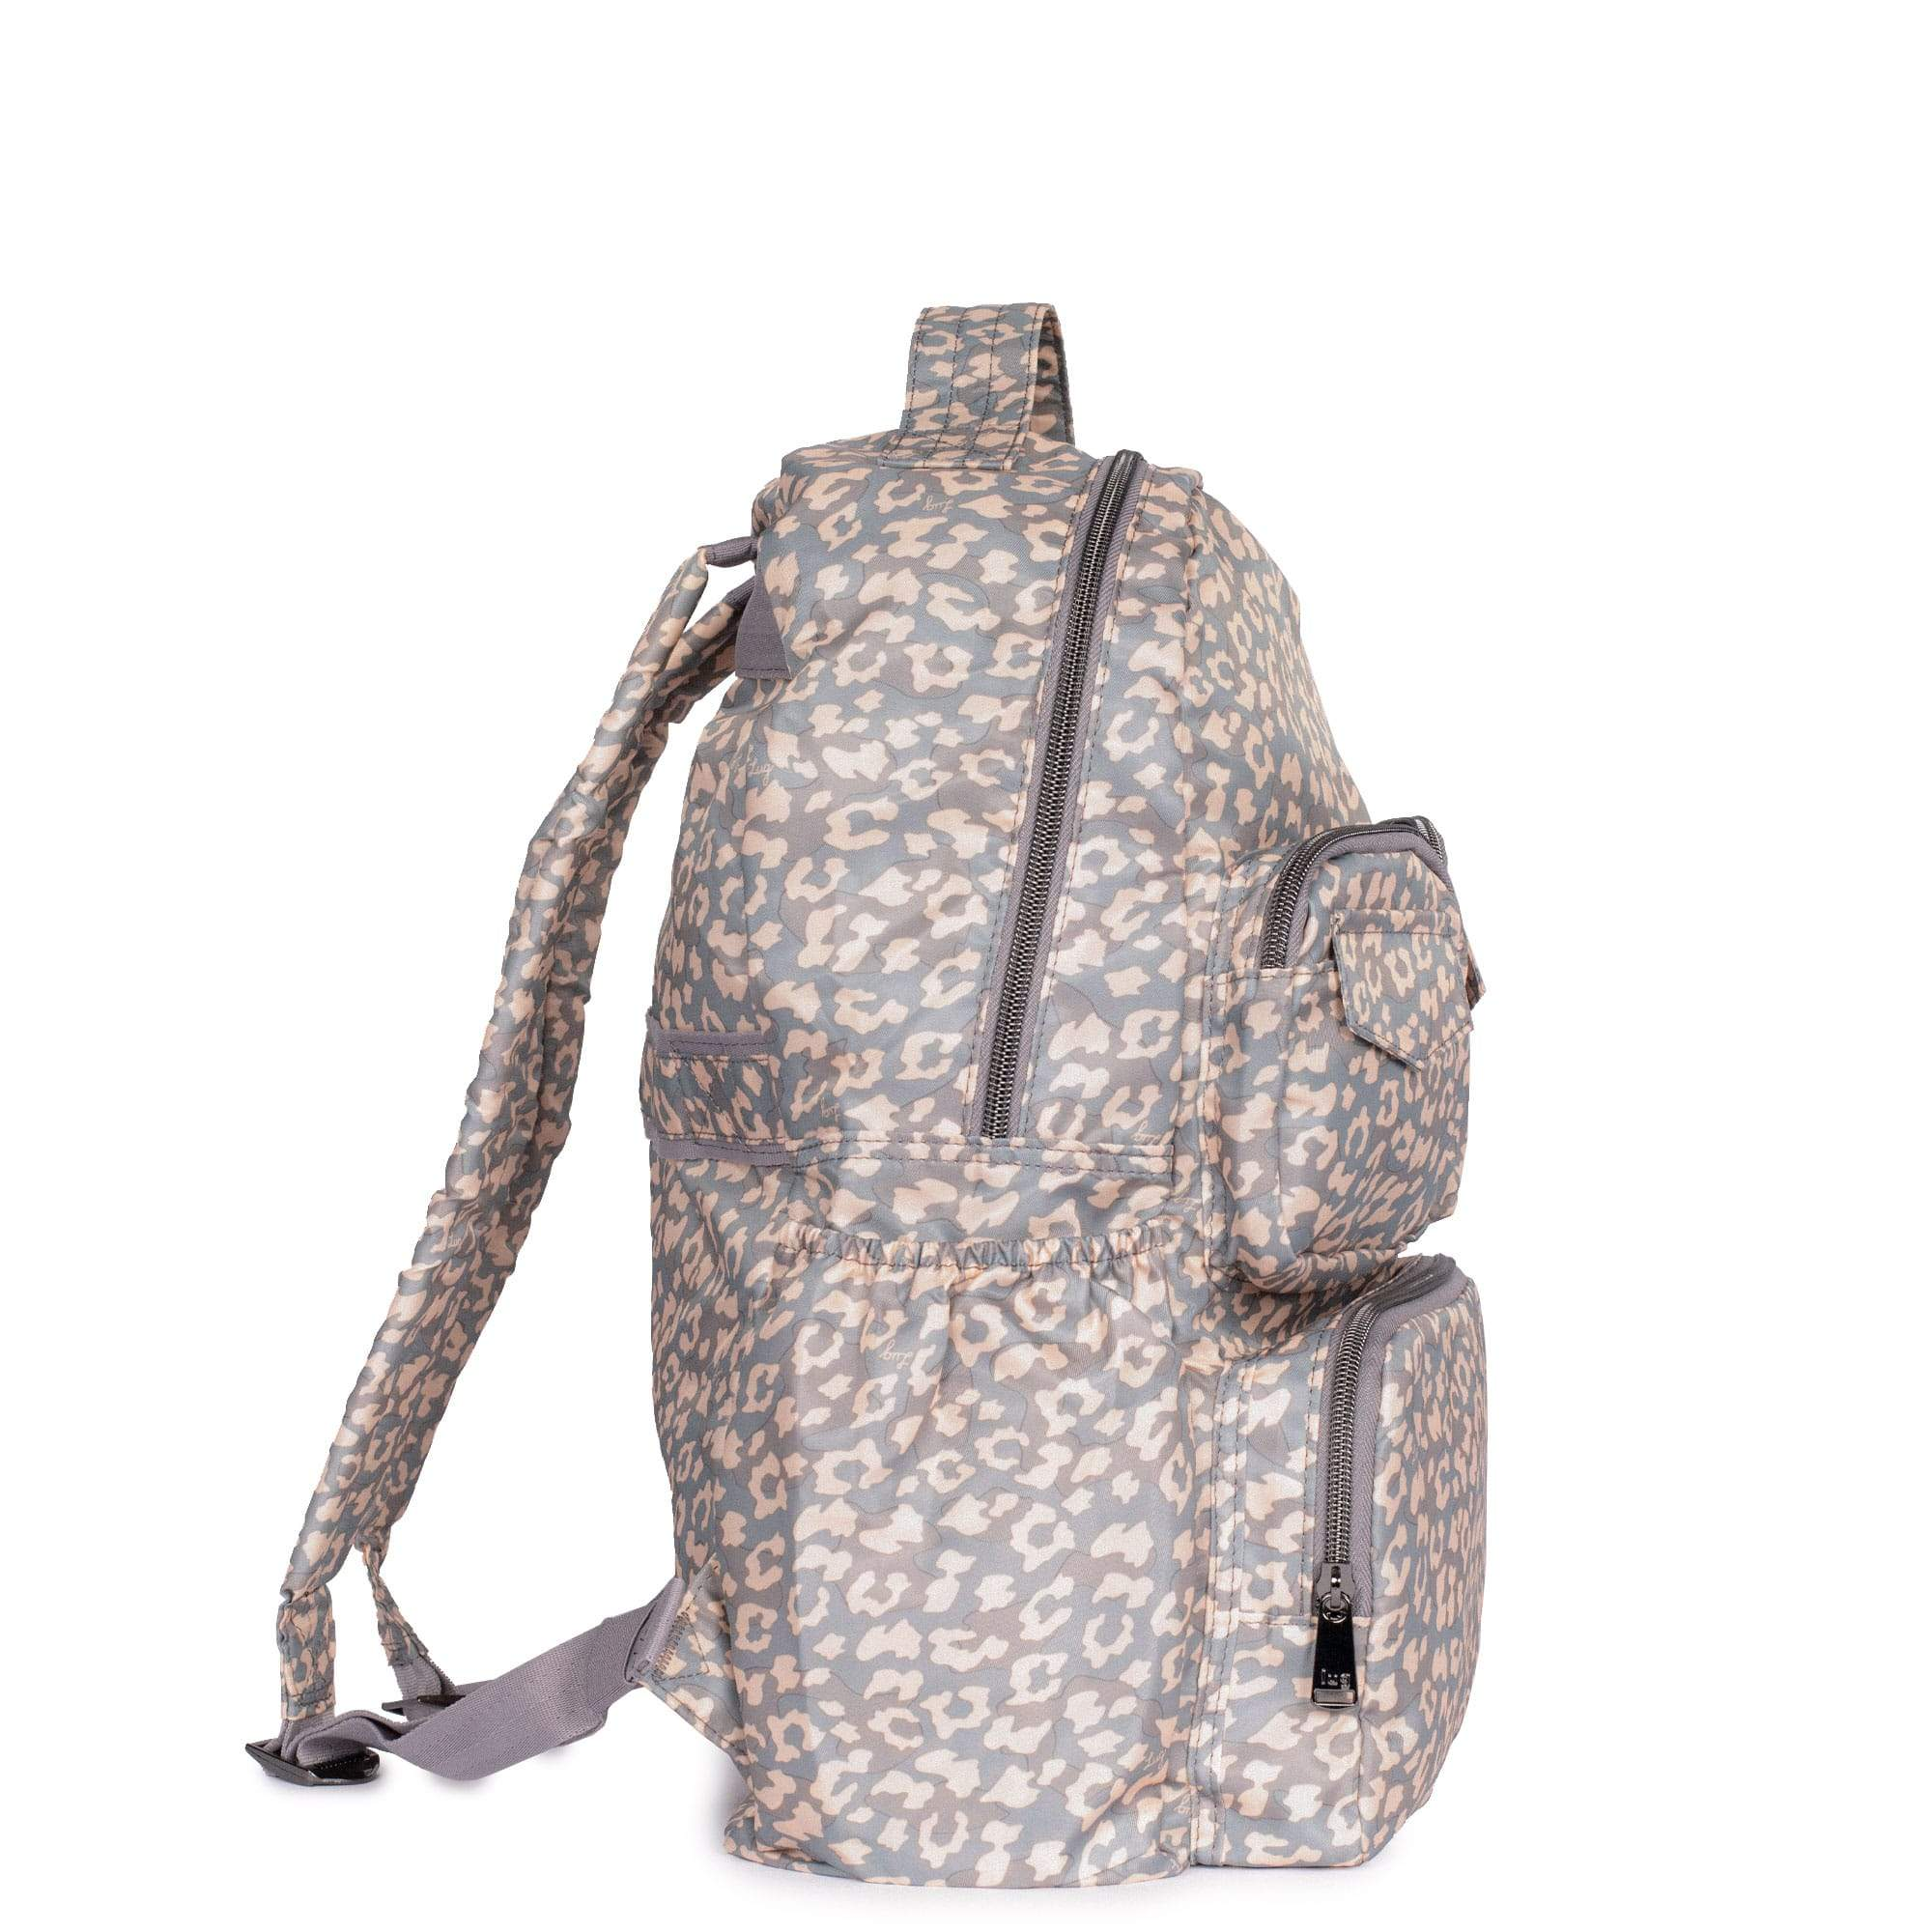 LUG- Puddle Leopard Pearl Packable Backpack